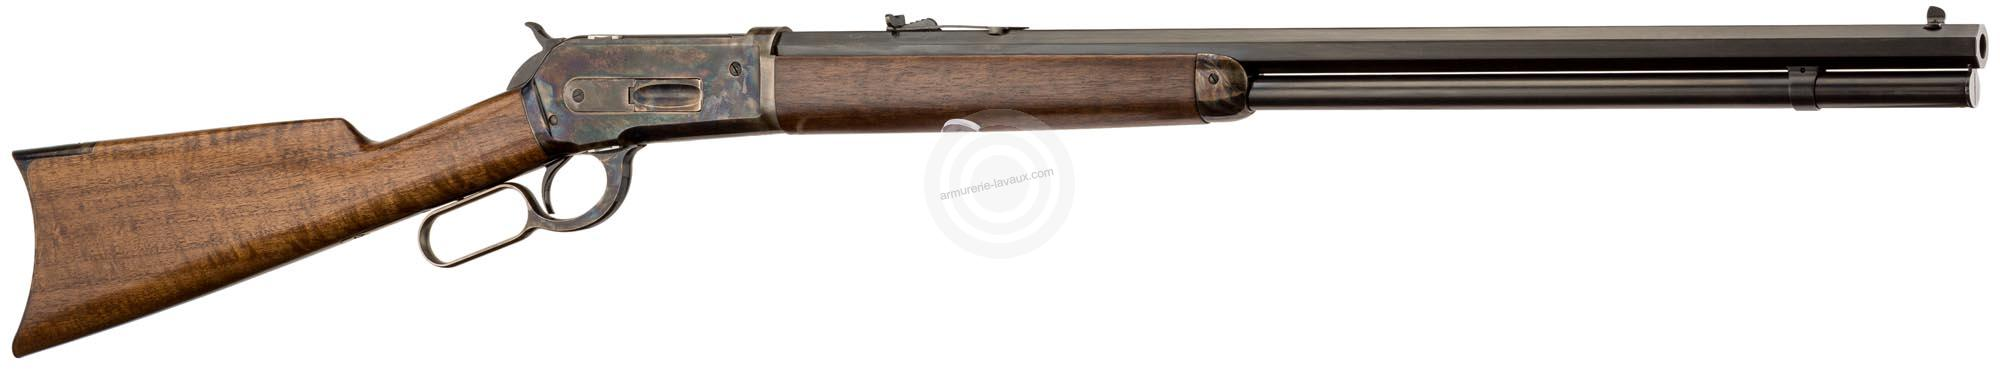 CHIAPPA 1886 Lever Action Rifle 26